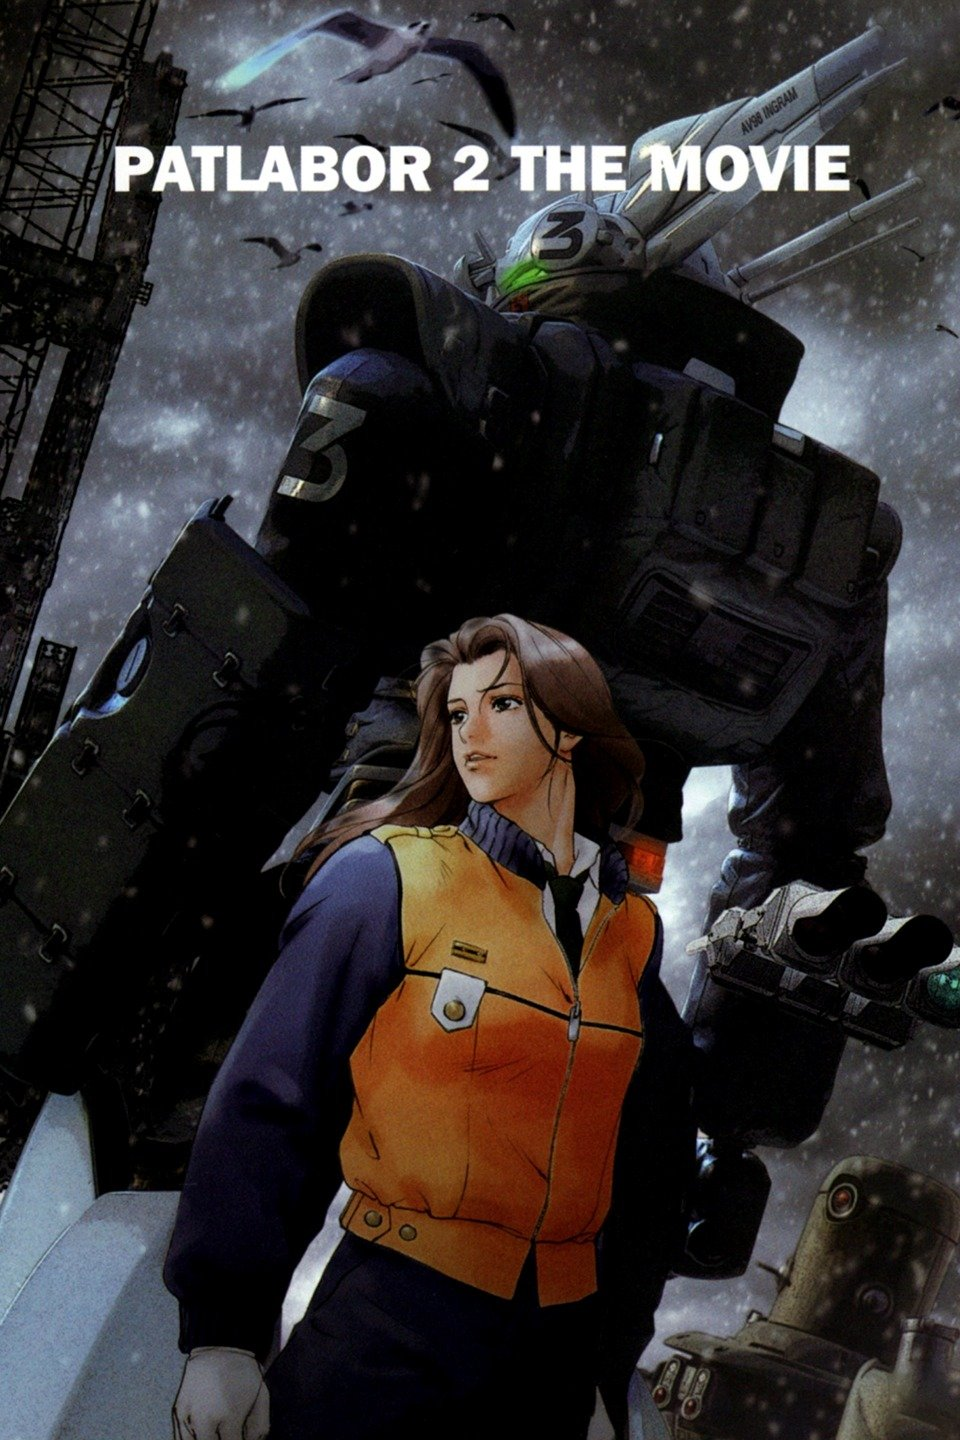 Patlabor 2: The Movie 1993